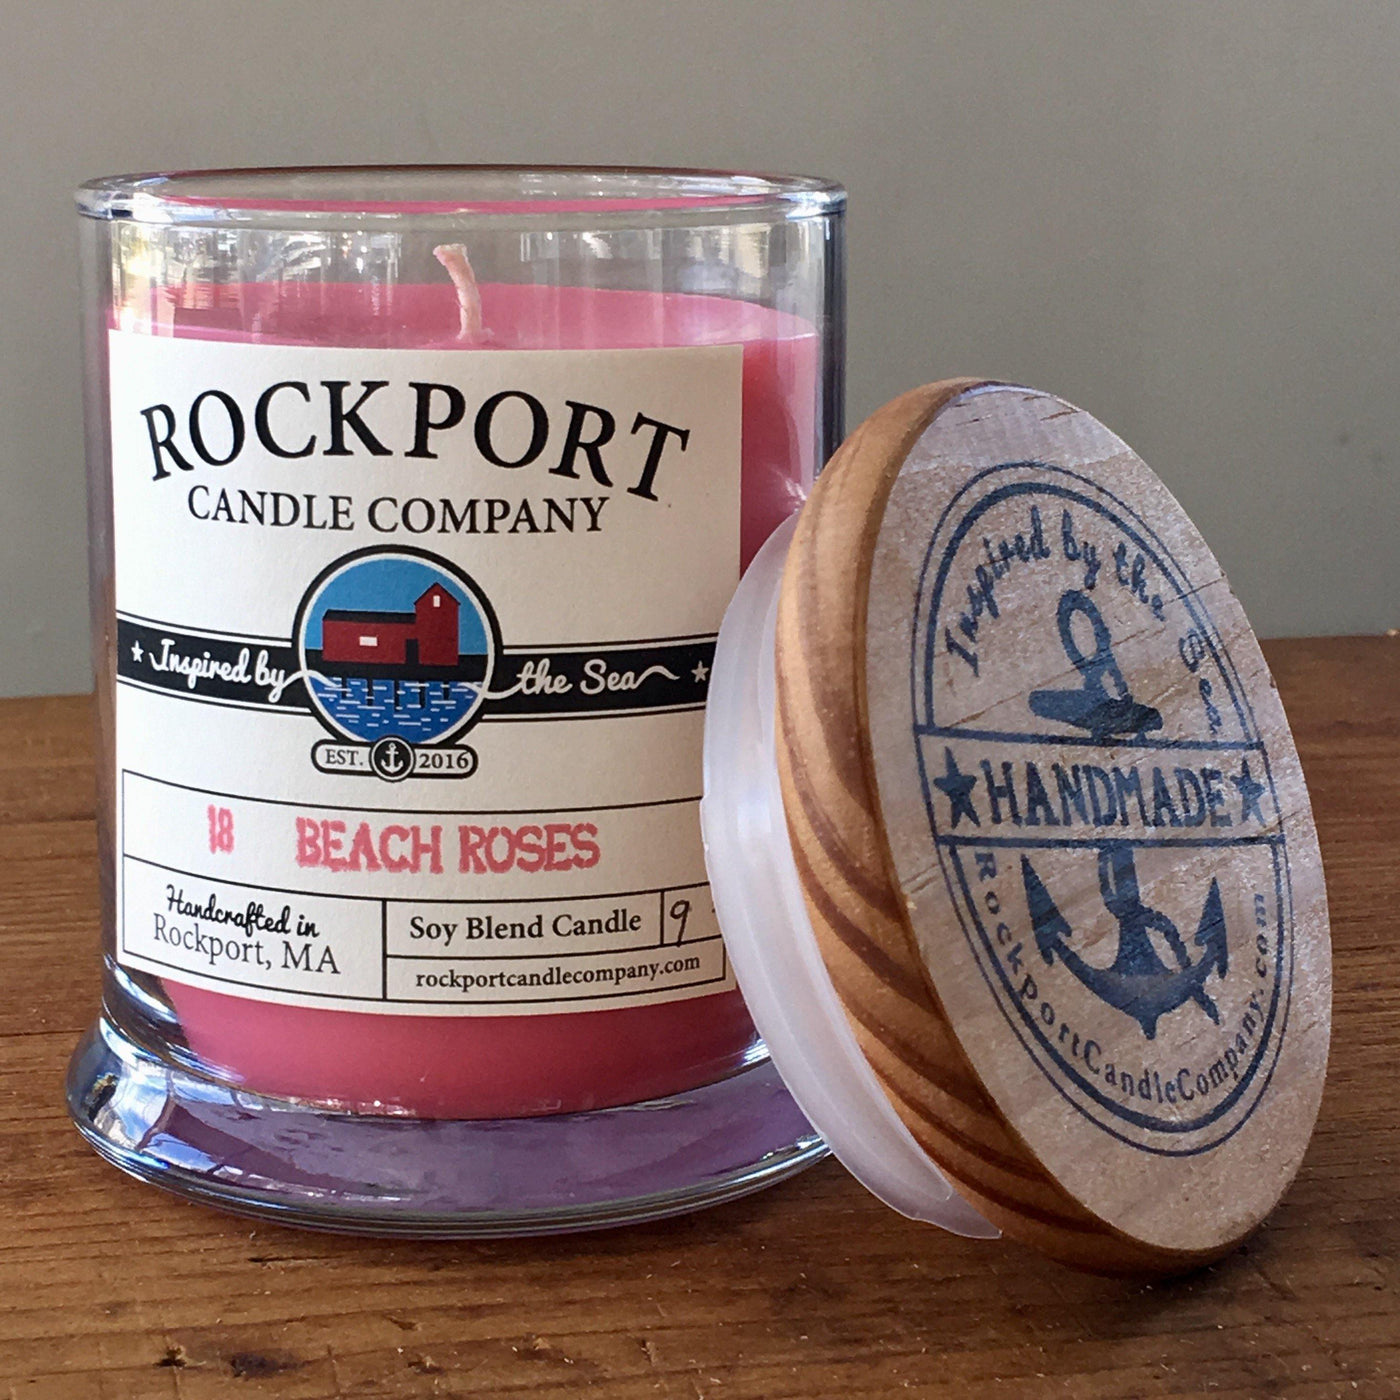 18 Beach Roses Candle Rockport Candle Company